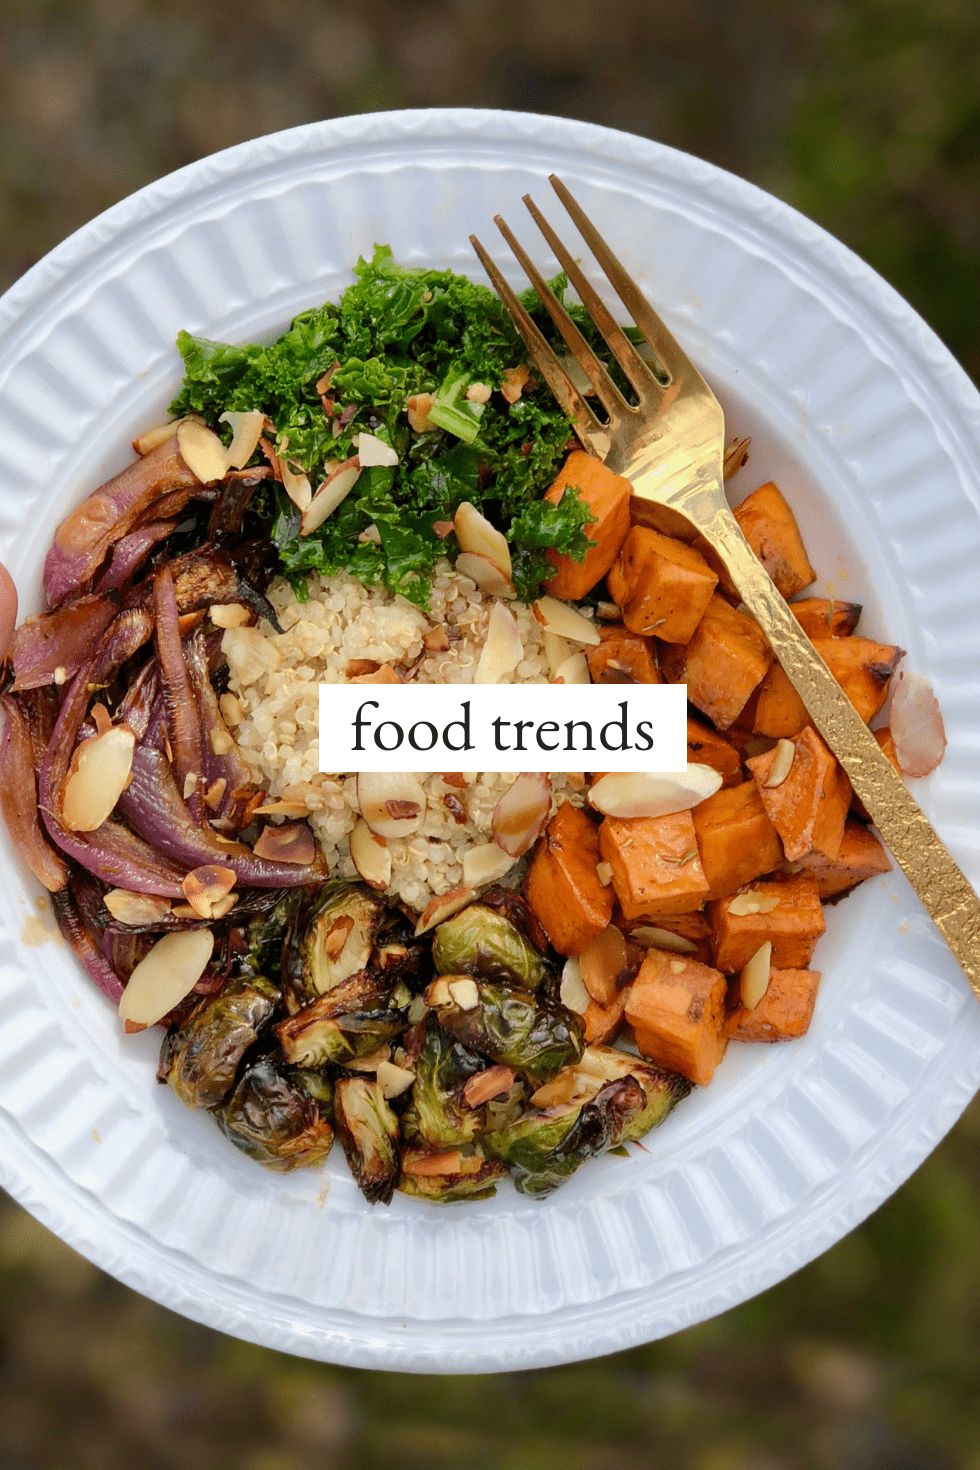 Food trends title image with buddha bowl on white plate with gold fork.